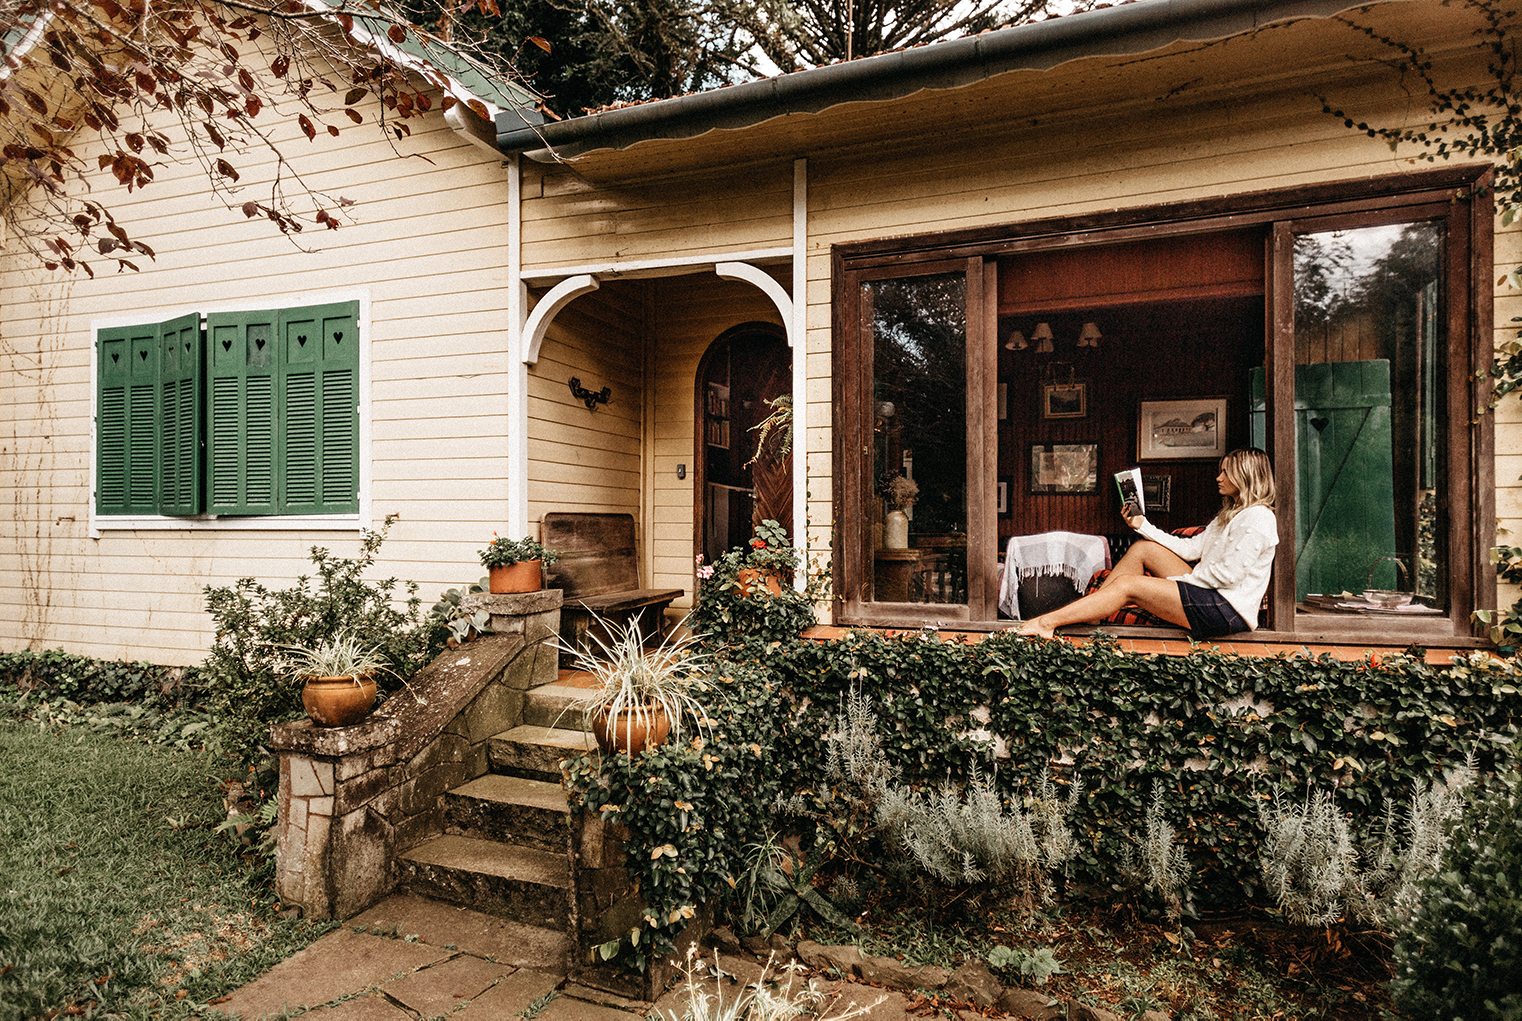 a woman reading a book on the front porch of a house